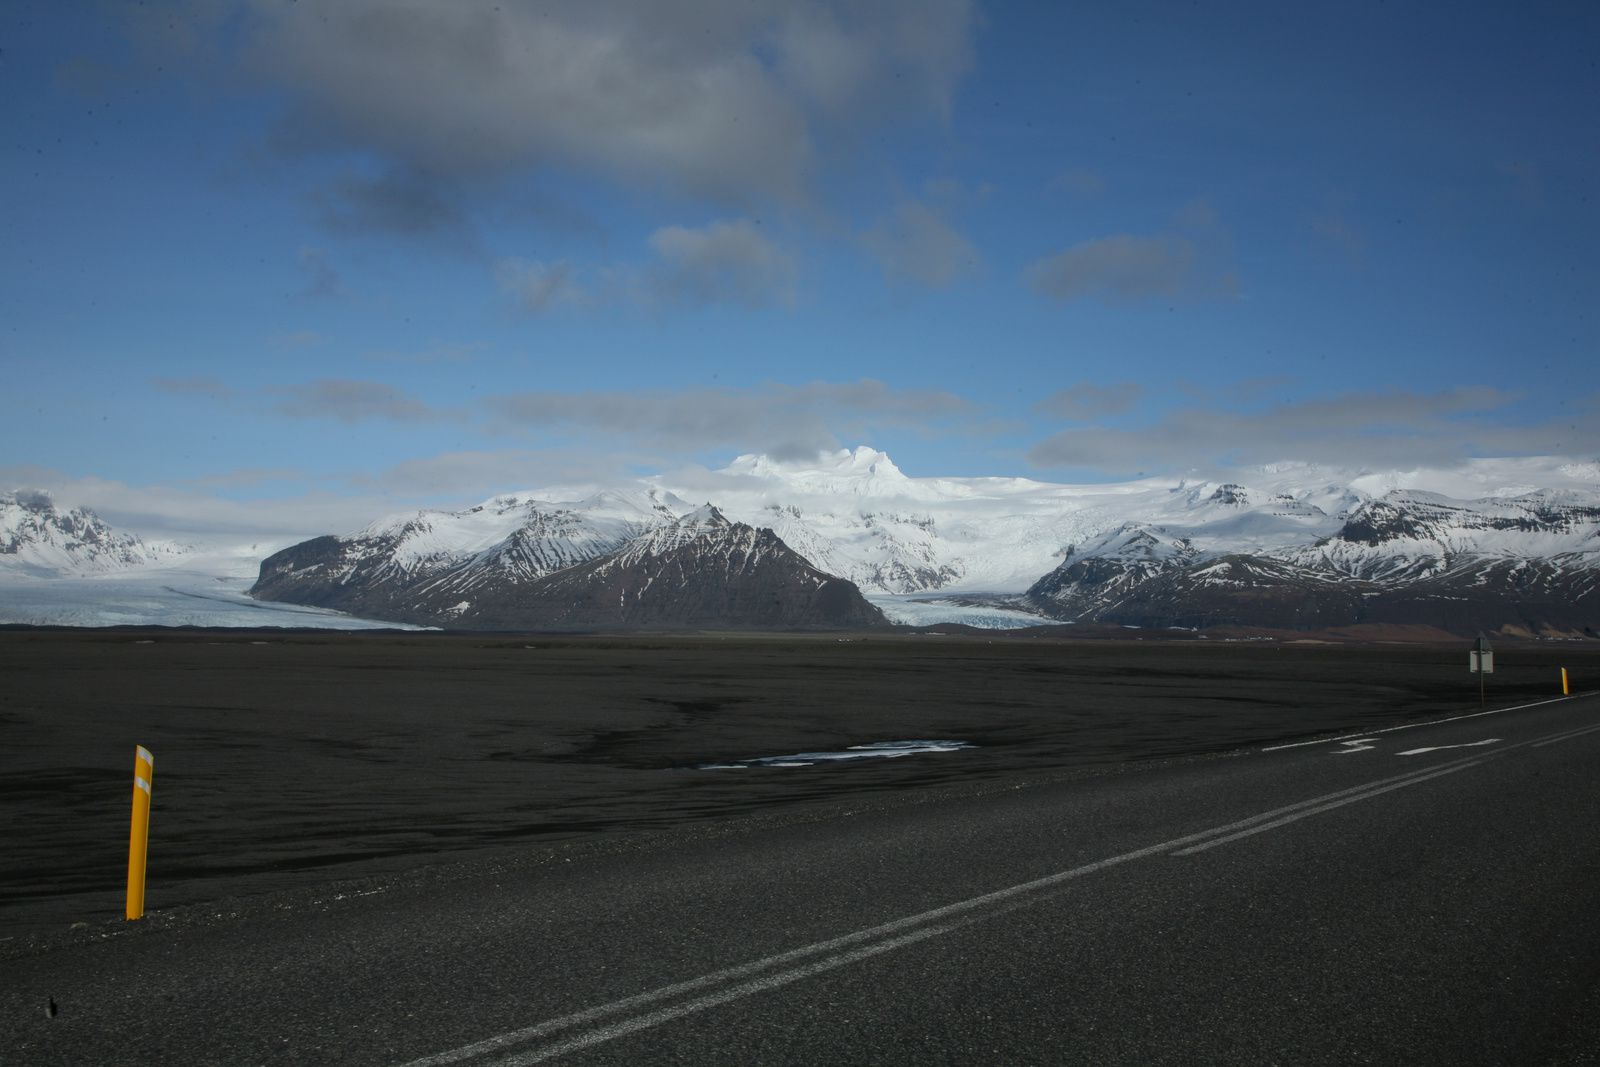 Two outlet glaciers (outlet glaciers) of Öræfajökull : the Skaftafellsjokull and Fjallsjökull, to the left ofthe road - photo © 2015 Bernard Duyck